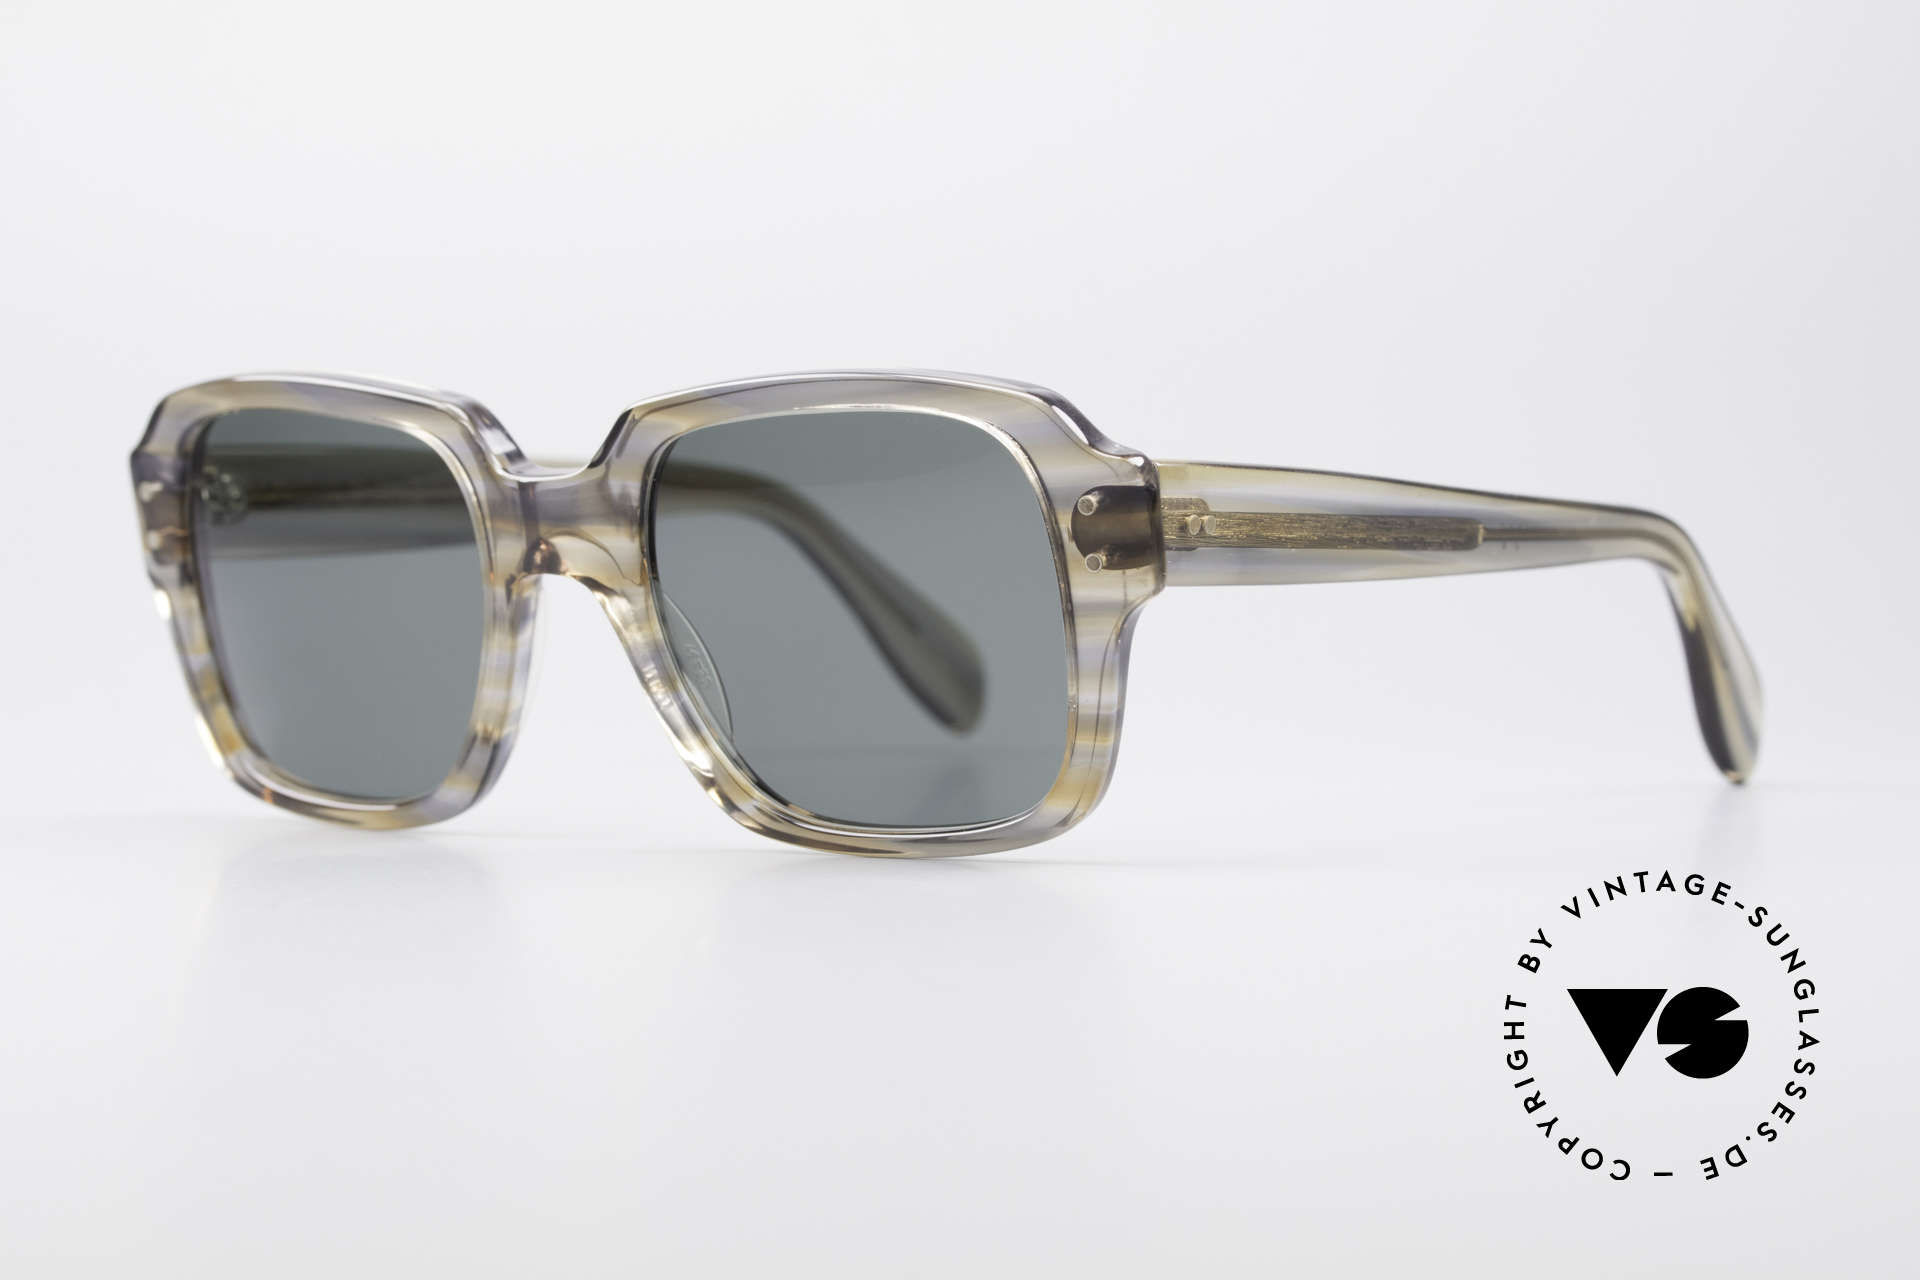 Metzler 448 Small 70's Sunglasses, massive frame, top craftsmanship; SMALL size 46-20, Made for Men